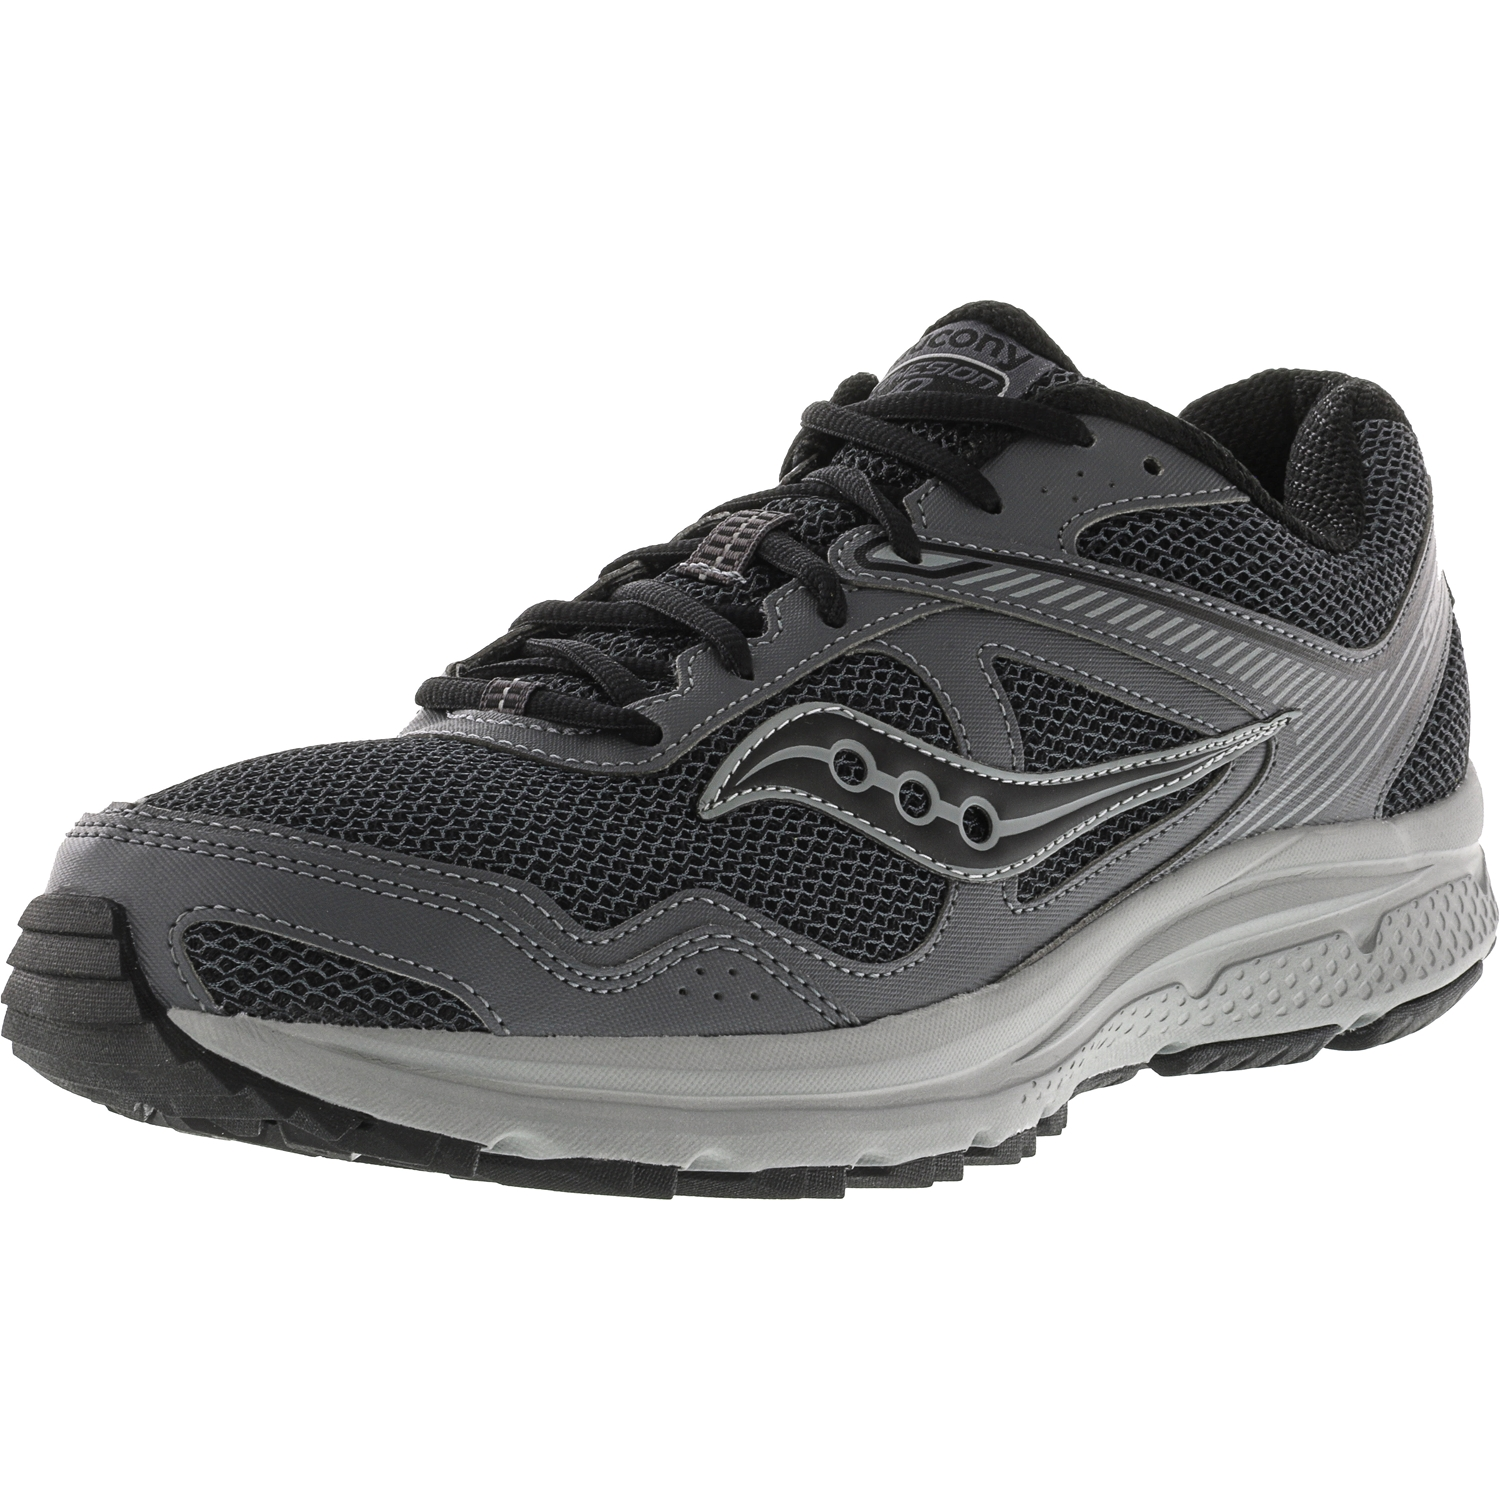 Saucony Men's Cohesion Tr 10 Charcoal   Grey Ankle-High Running Shoe 11M by Saucony